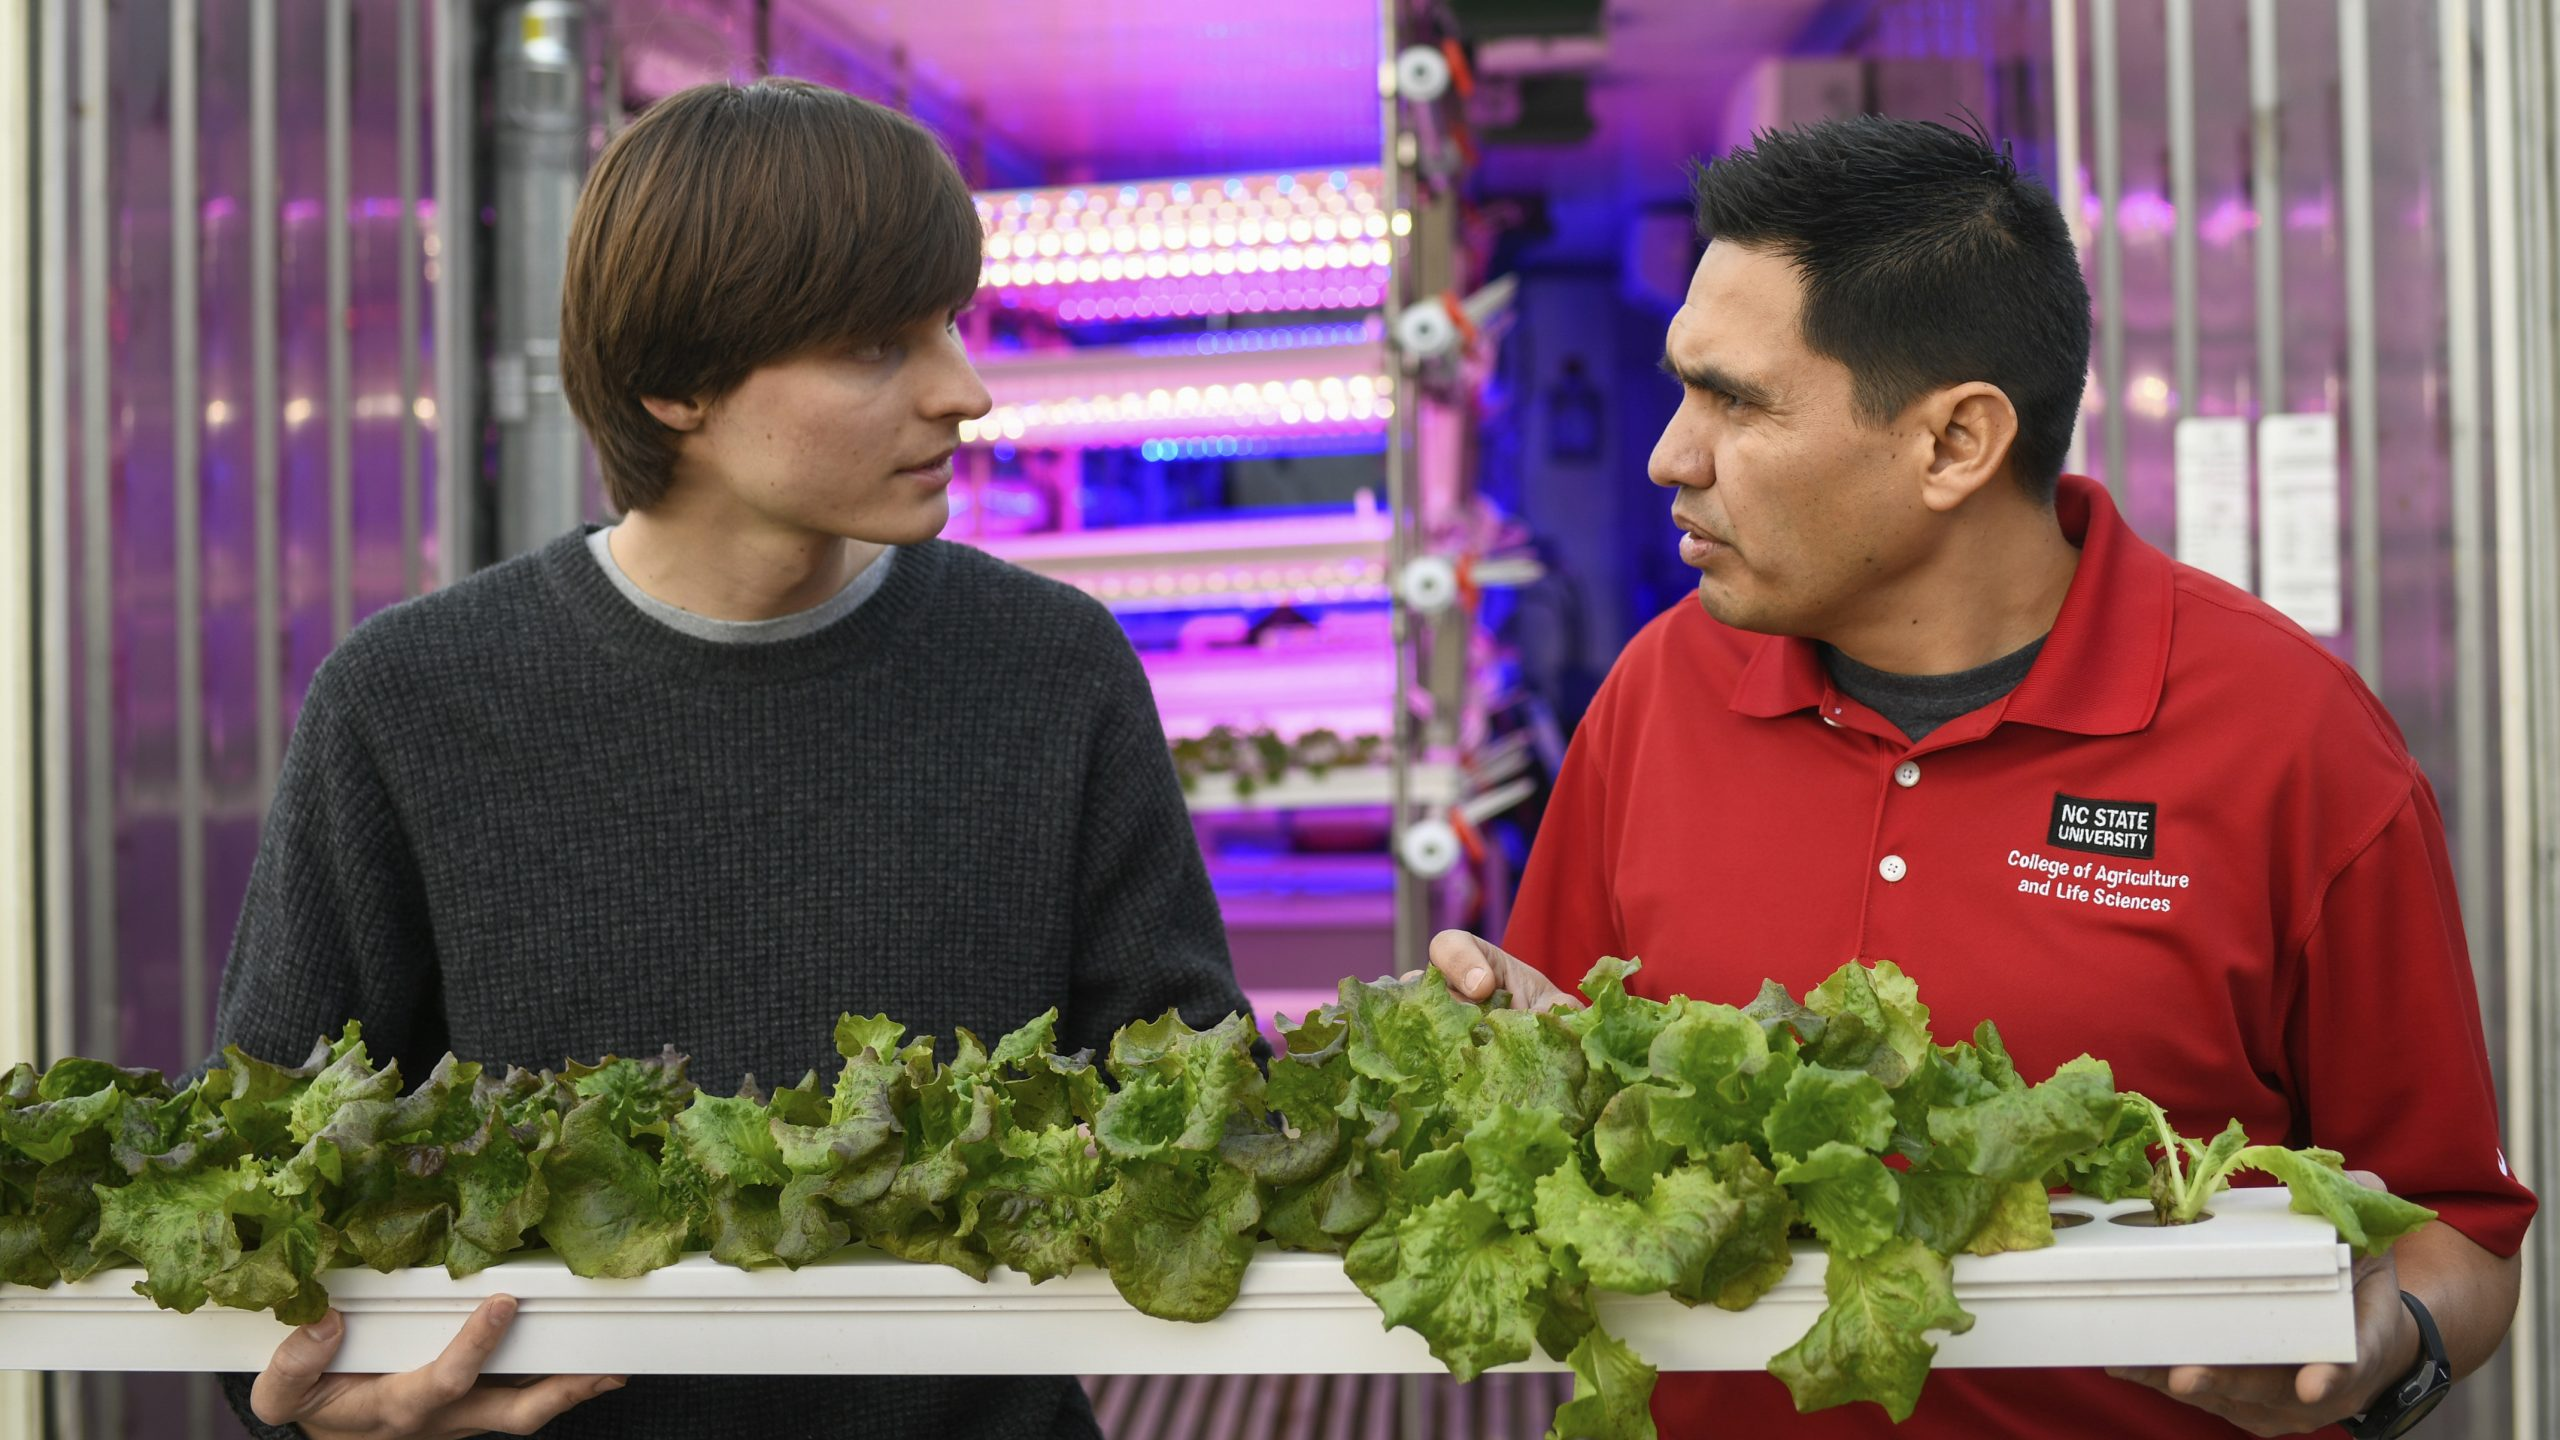 Two men holding a tray of lettuce in front of a shipping container farm lit in purple